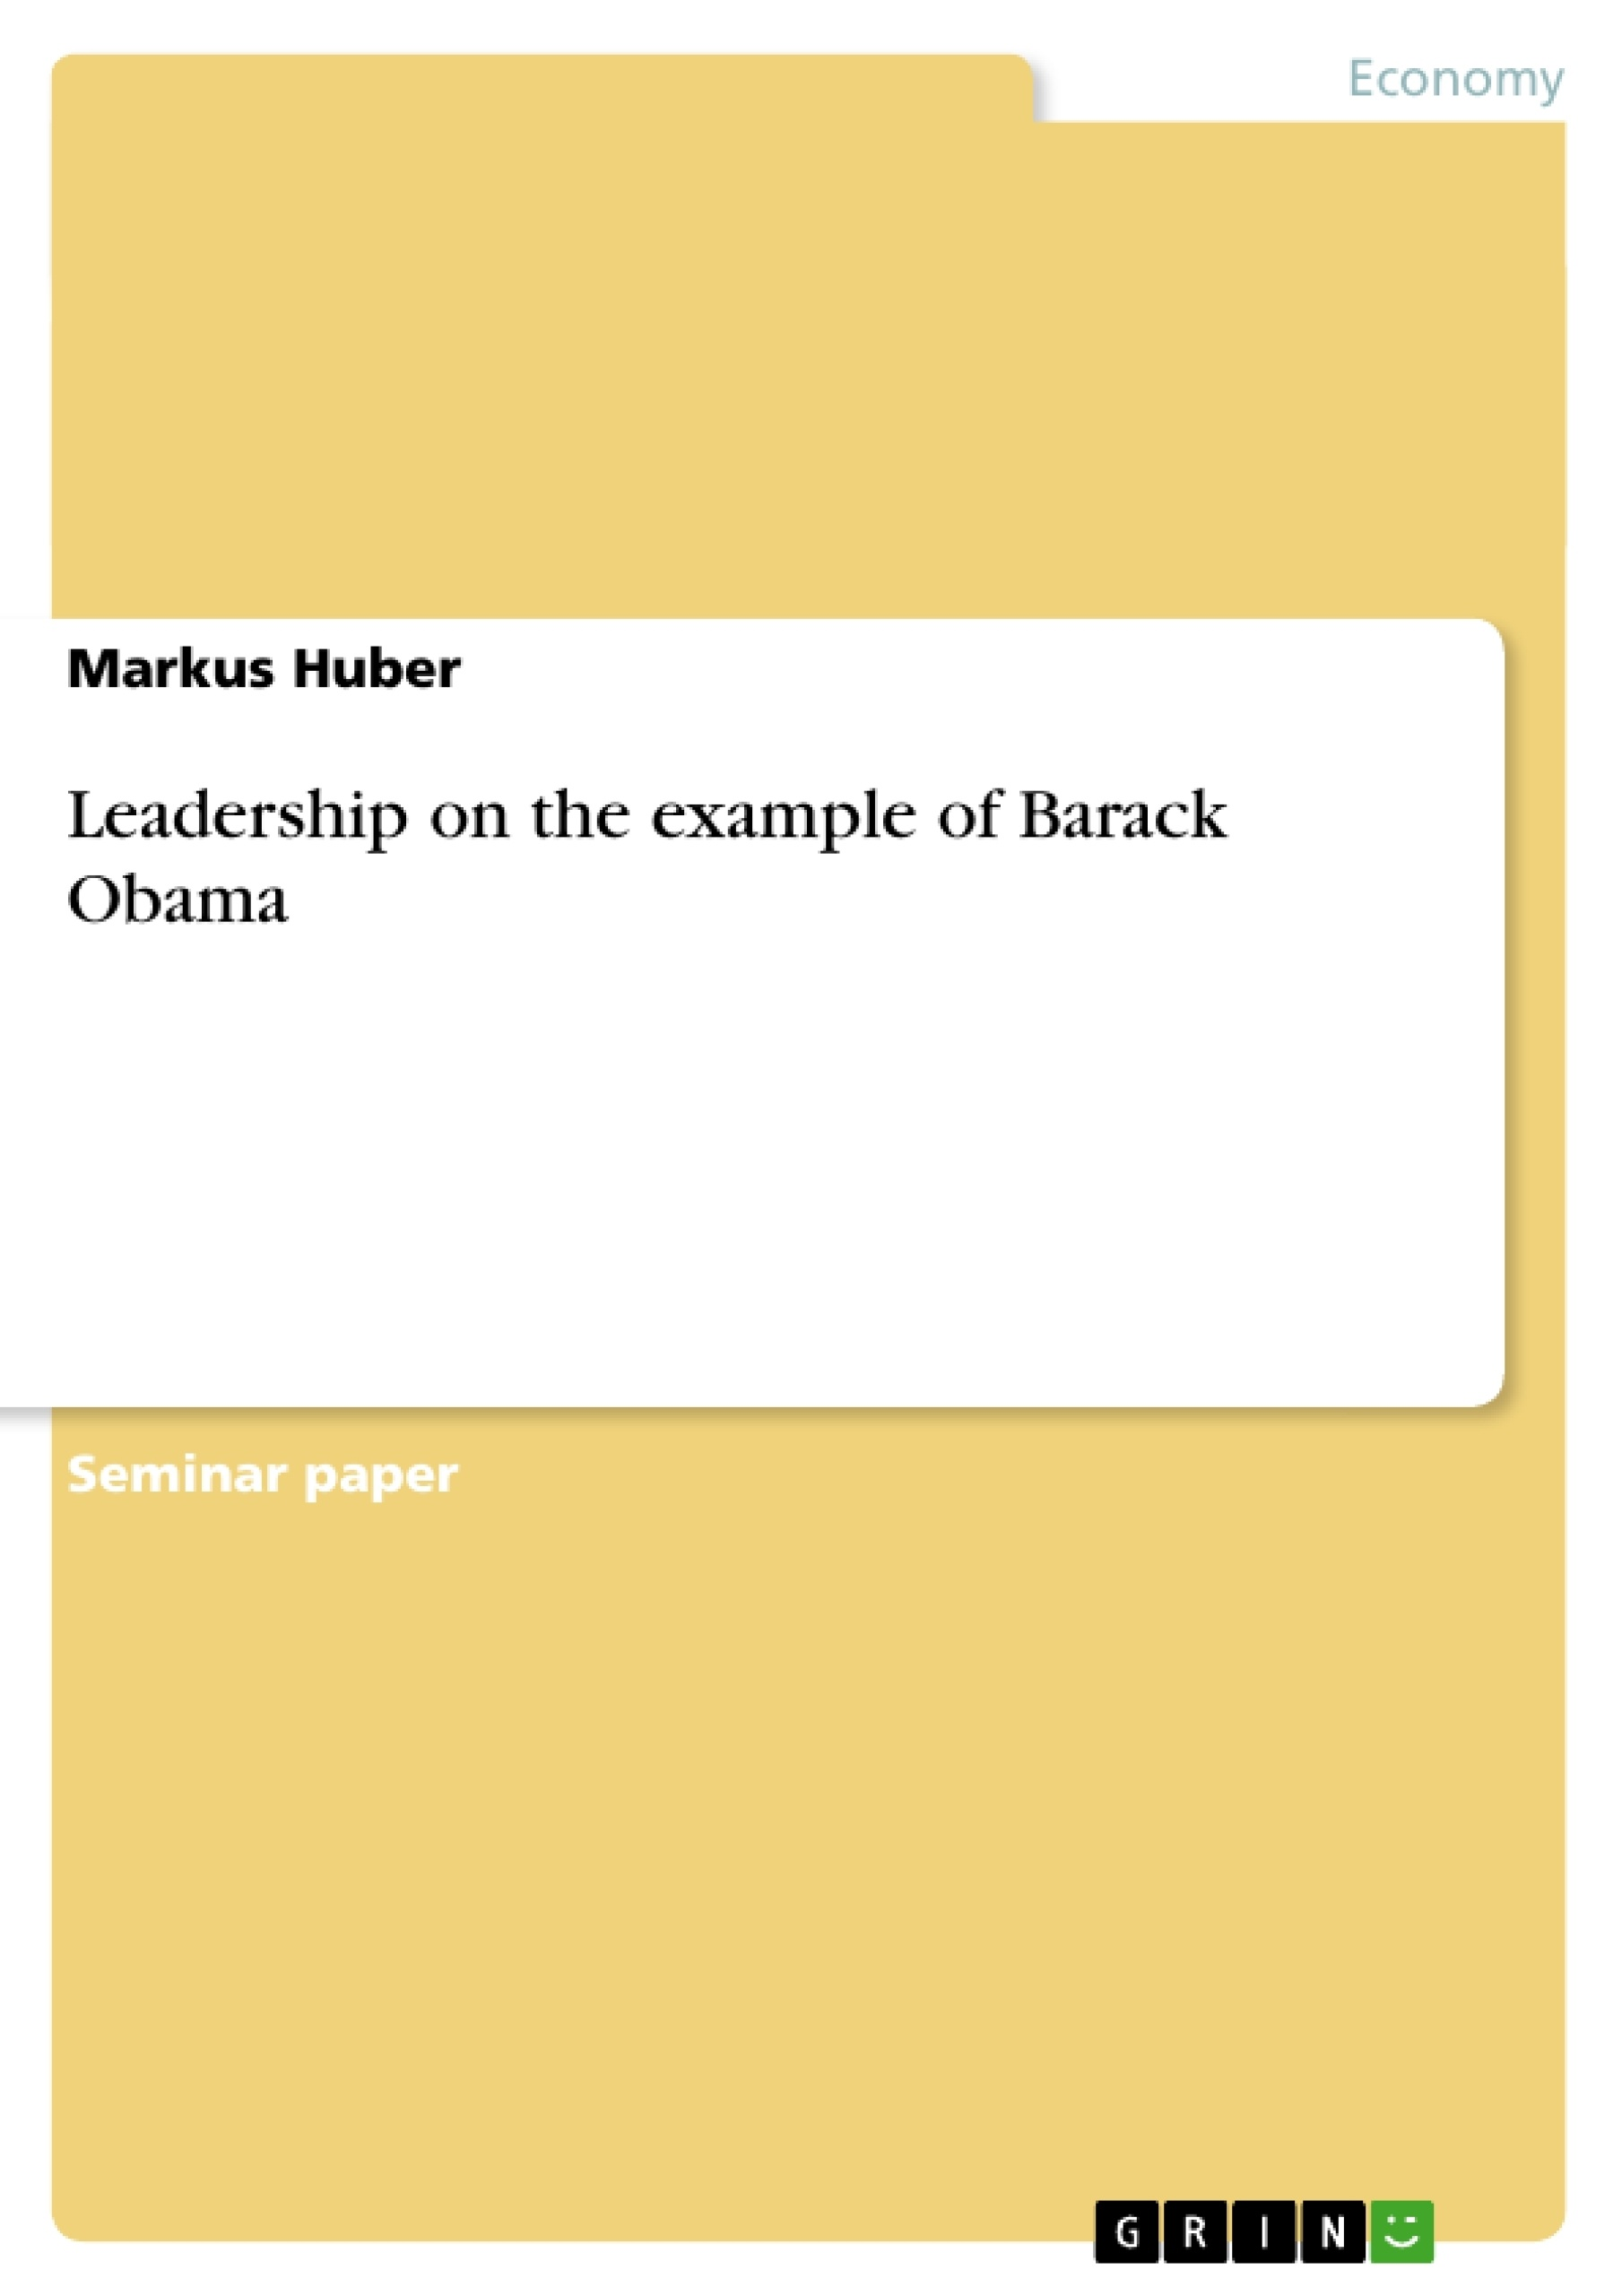 obamas thesis paper That comment has fueled debate on countless blogs, radio talk shows and cable news for days on end, causing her to explain the statement in greater detail the 1985 thesis provides a trove of michelle obama's thoughts as a young woman, with many of the paper's statements describing the student's world as seen.